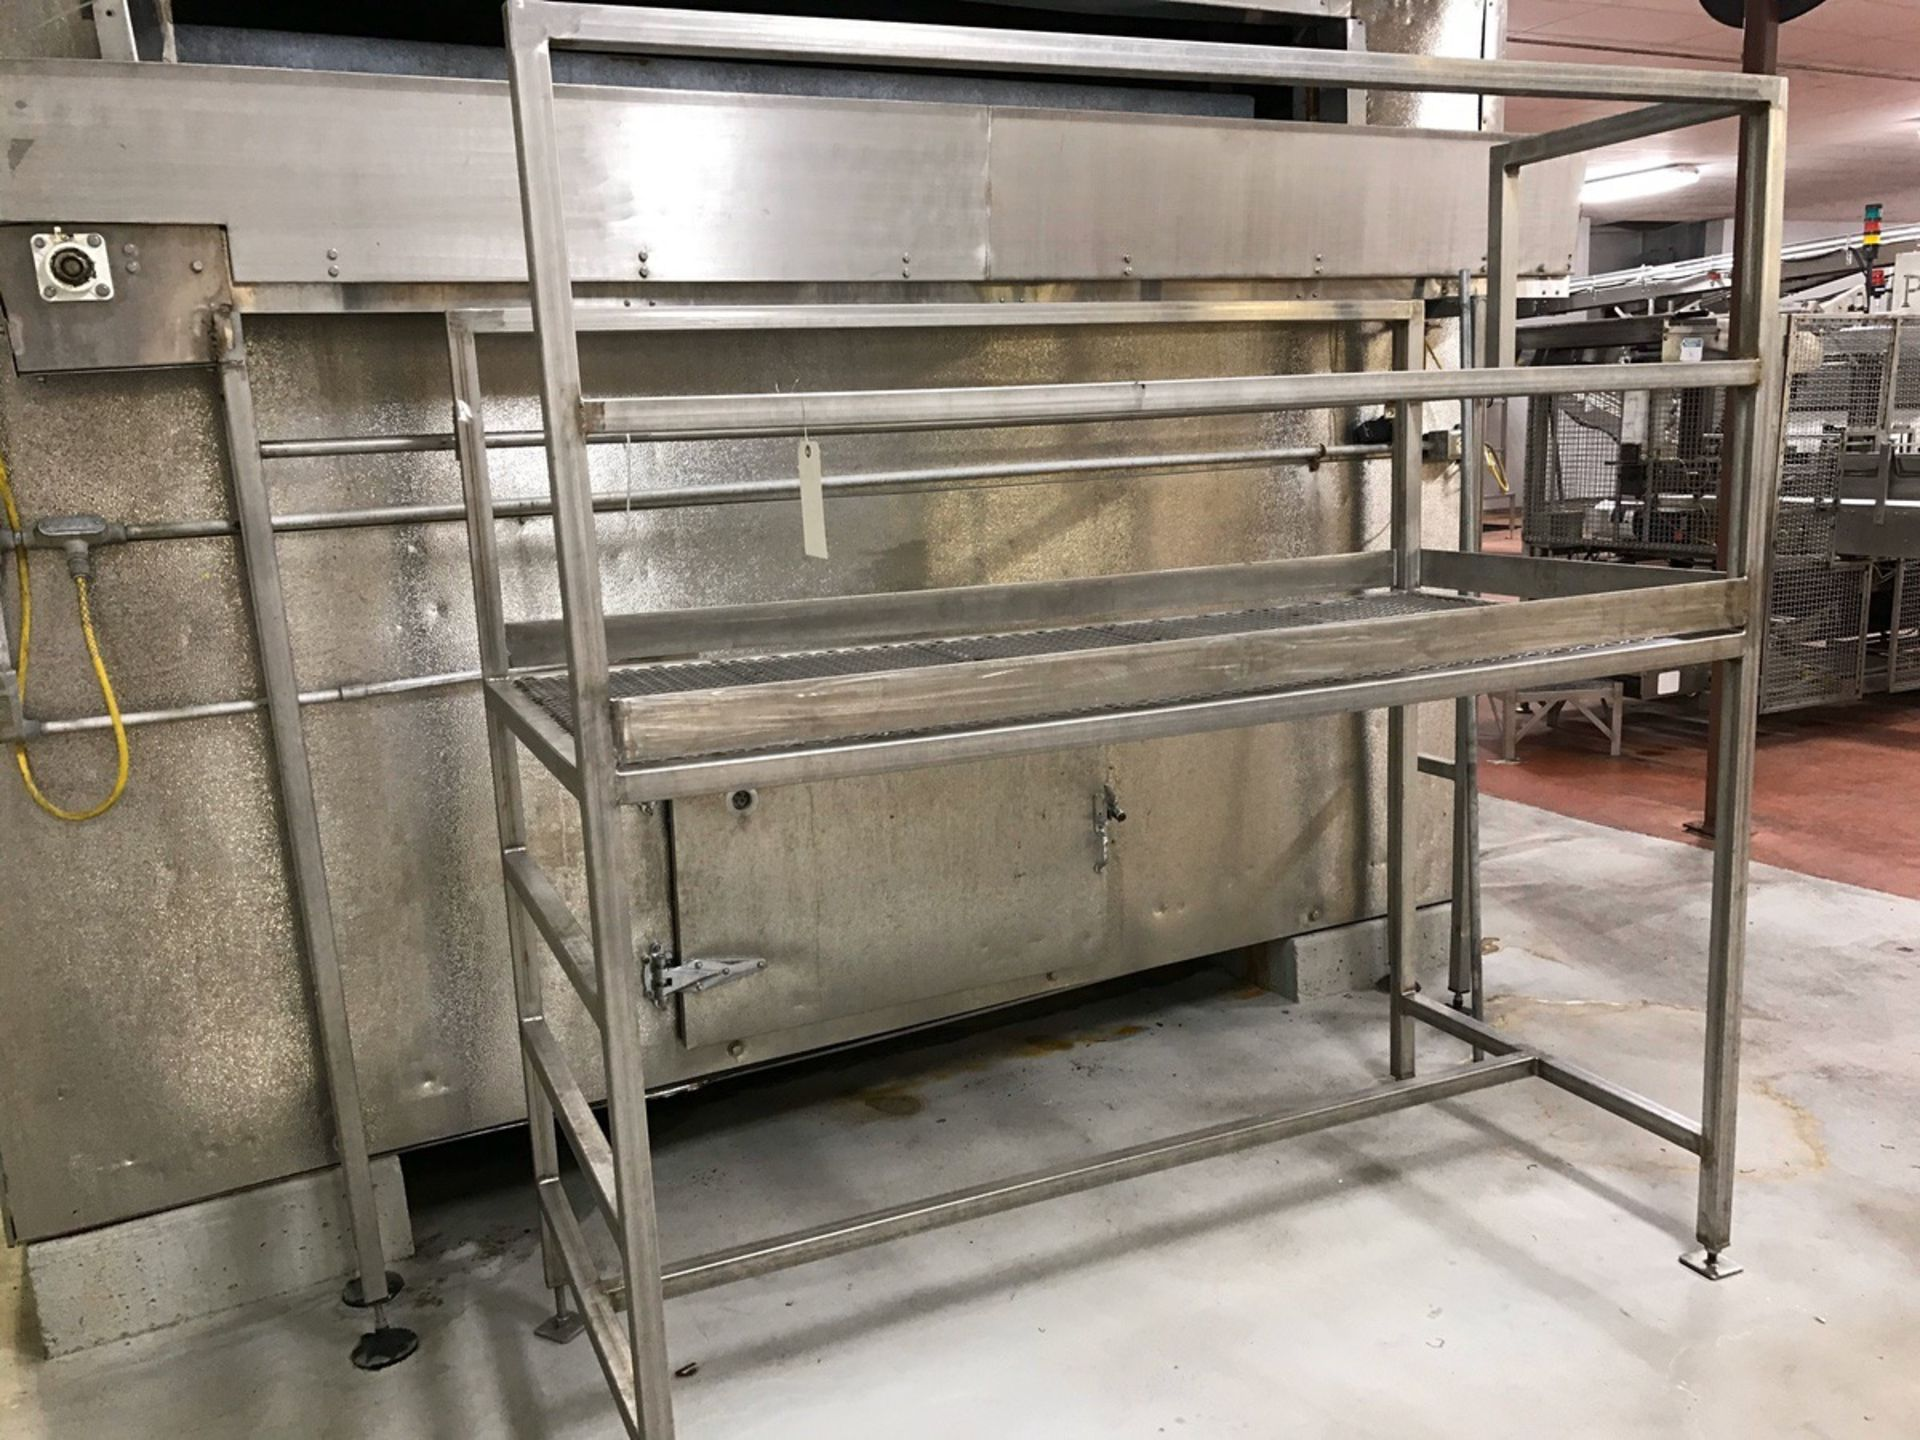 Lot 150 - 32in x 72in Stainless Steel Inspection Platform | Rig Fee: $100